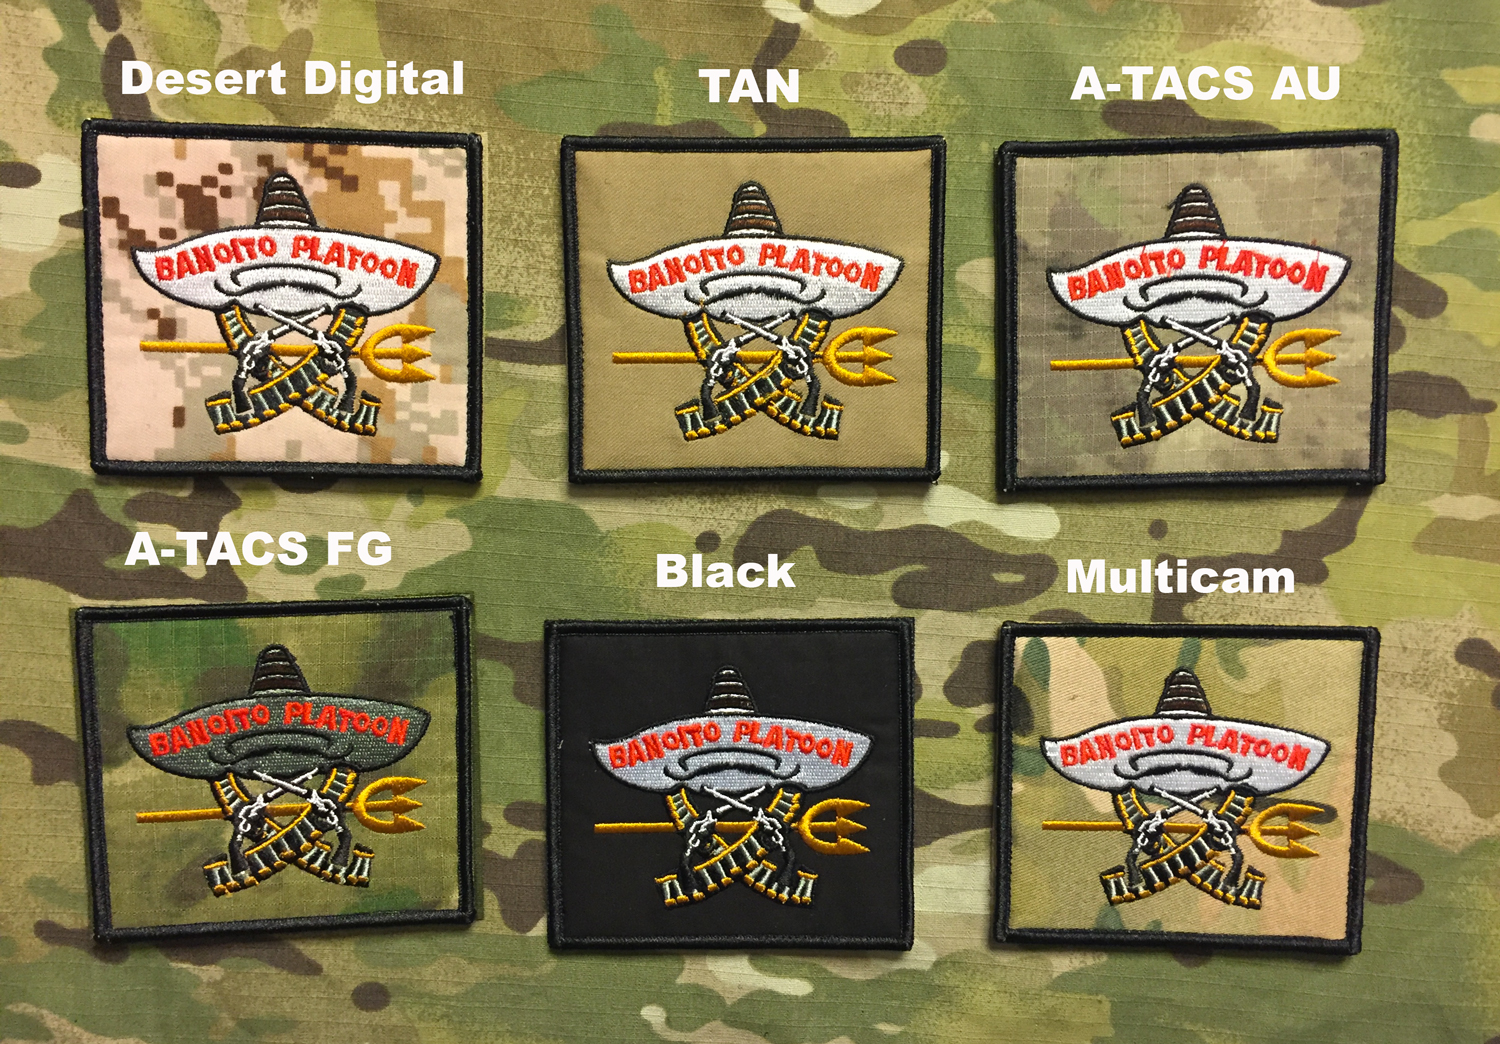 YJPF SEAL TEAM BANDITO PLATOON Patch